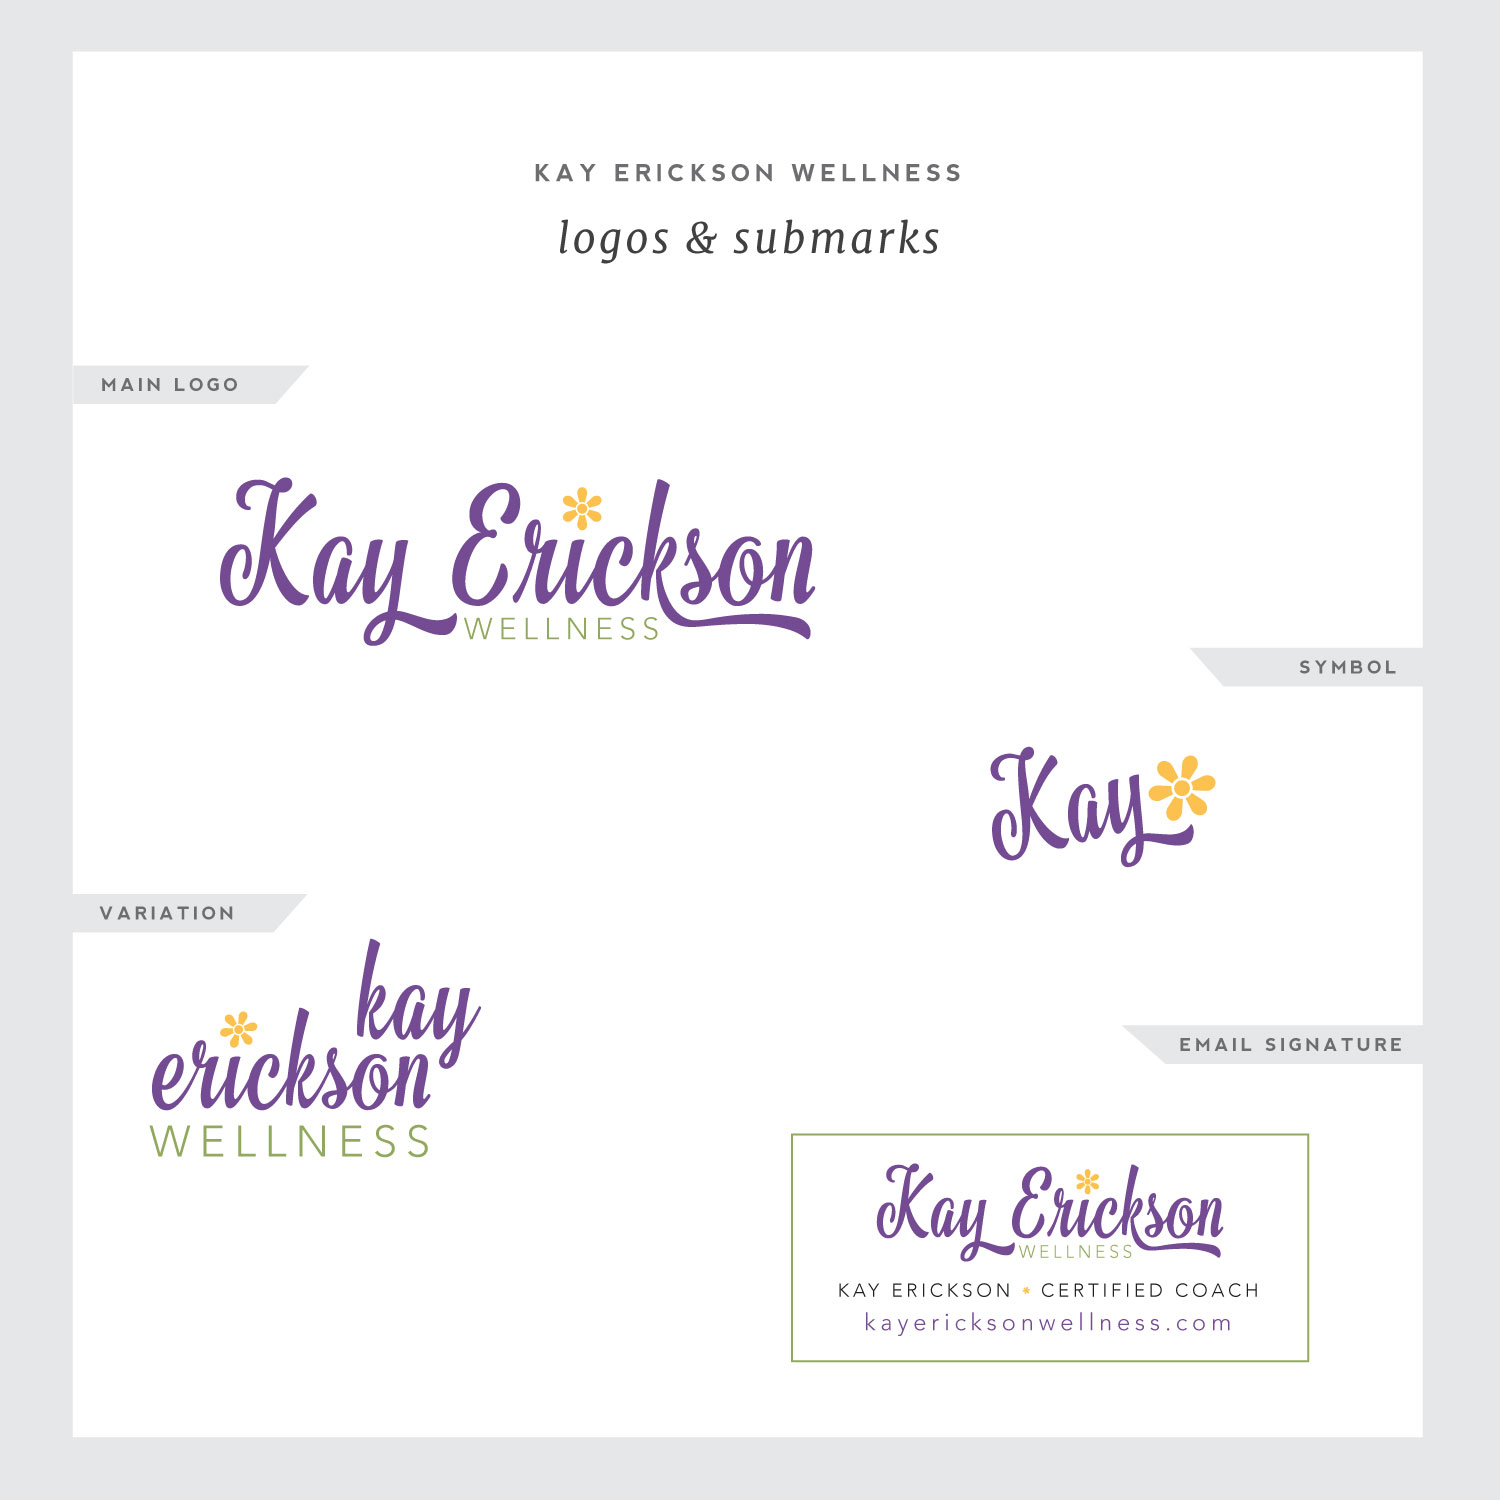 Samples of logo variations for Simple & Soulful Creative client, Kay Erickson.